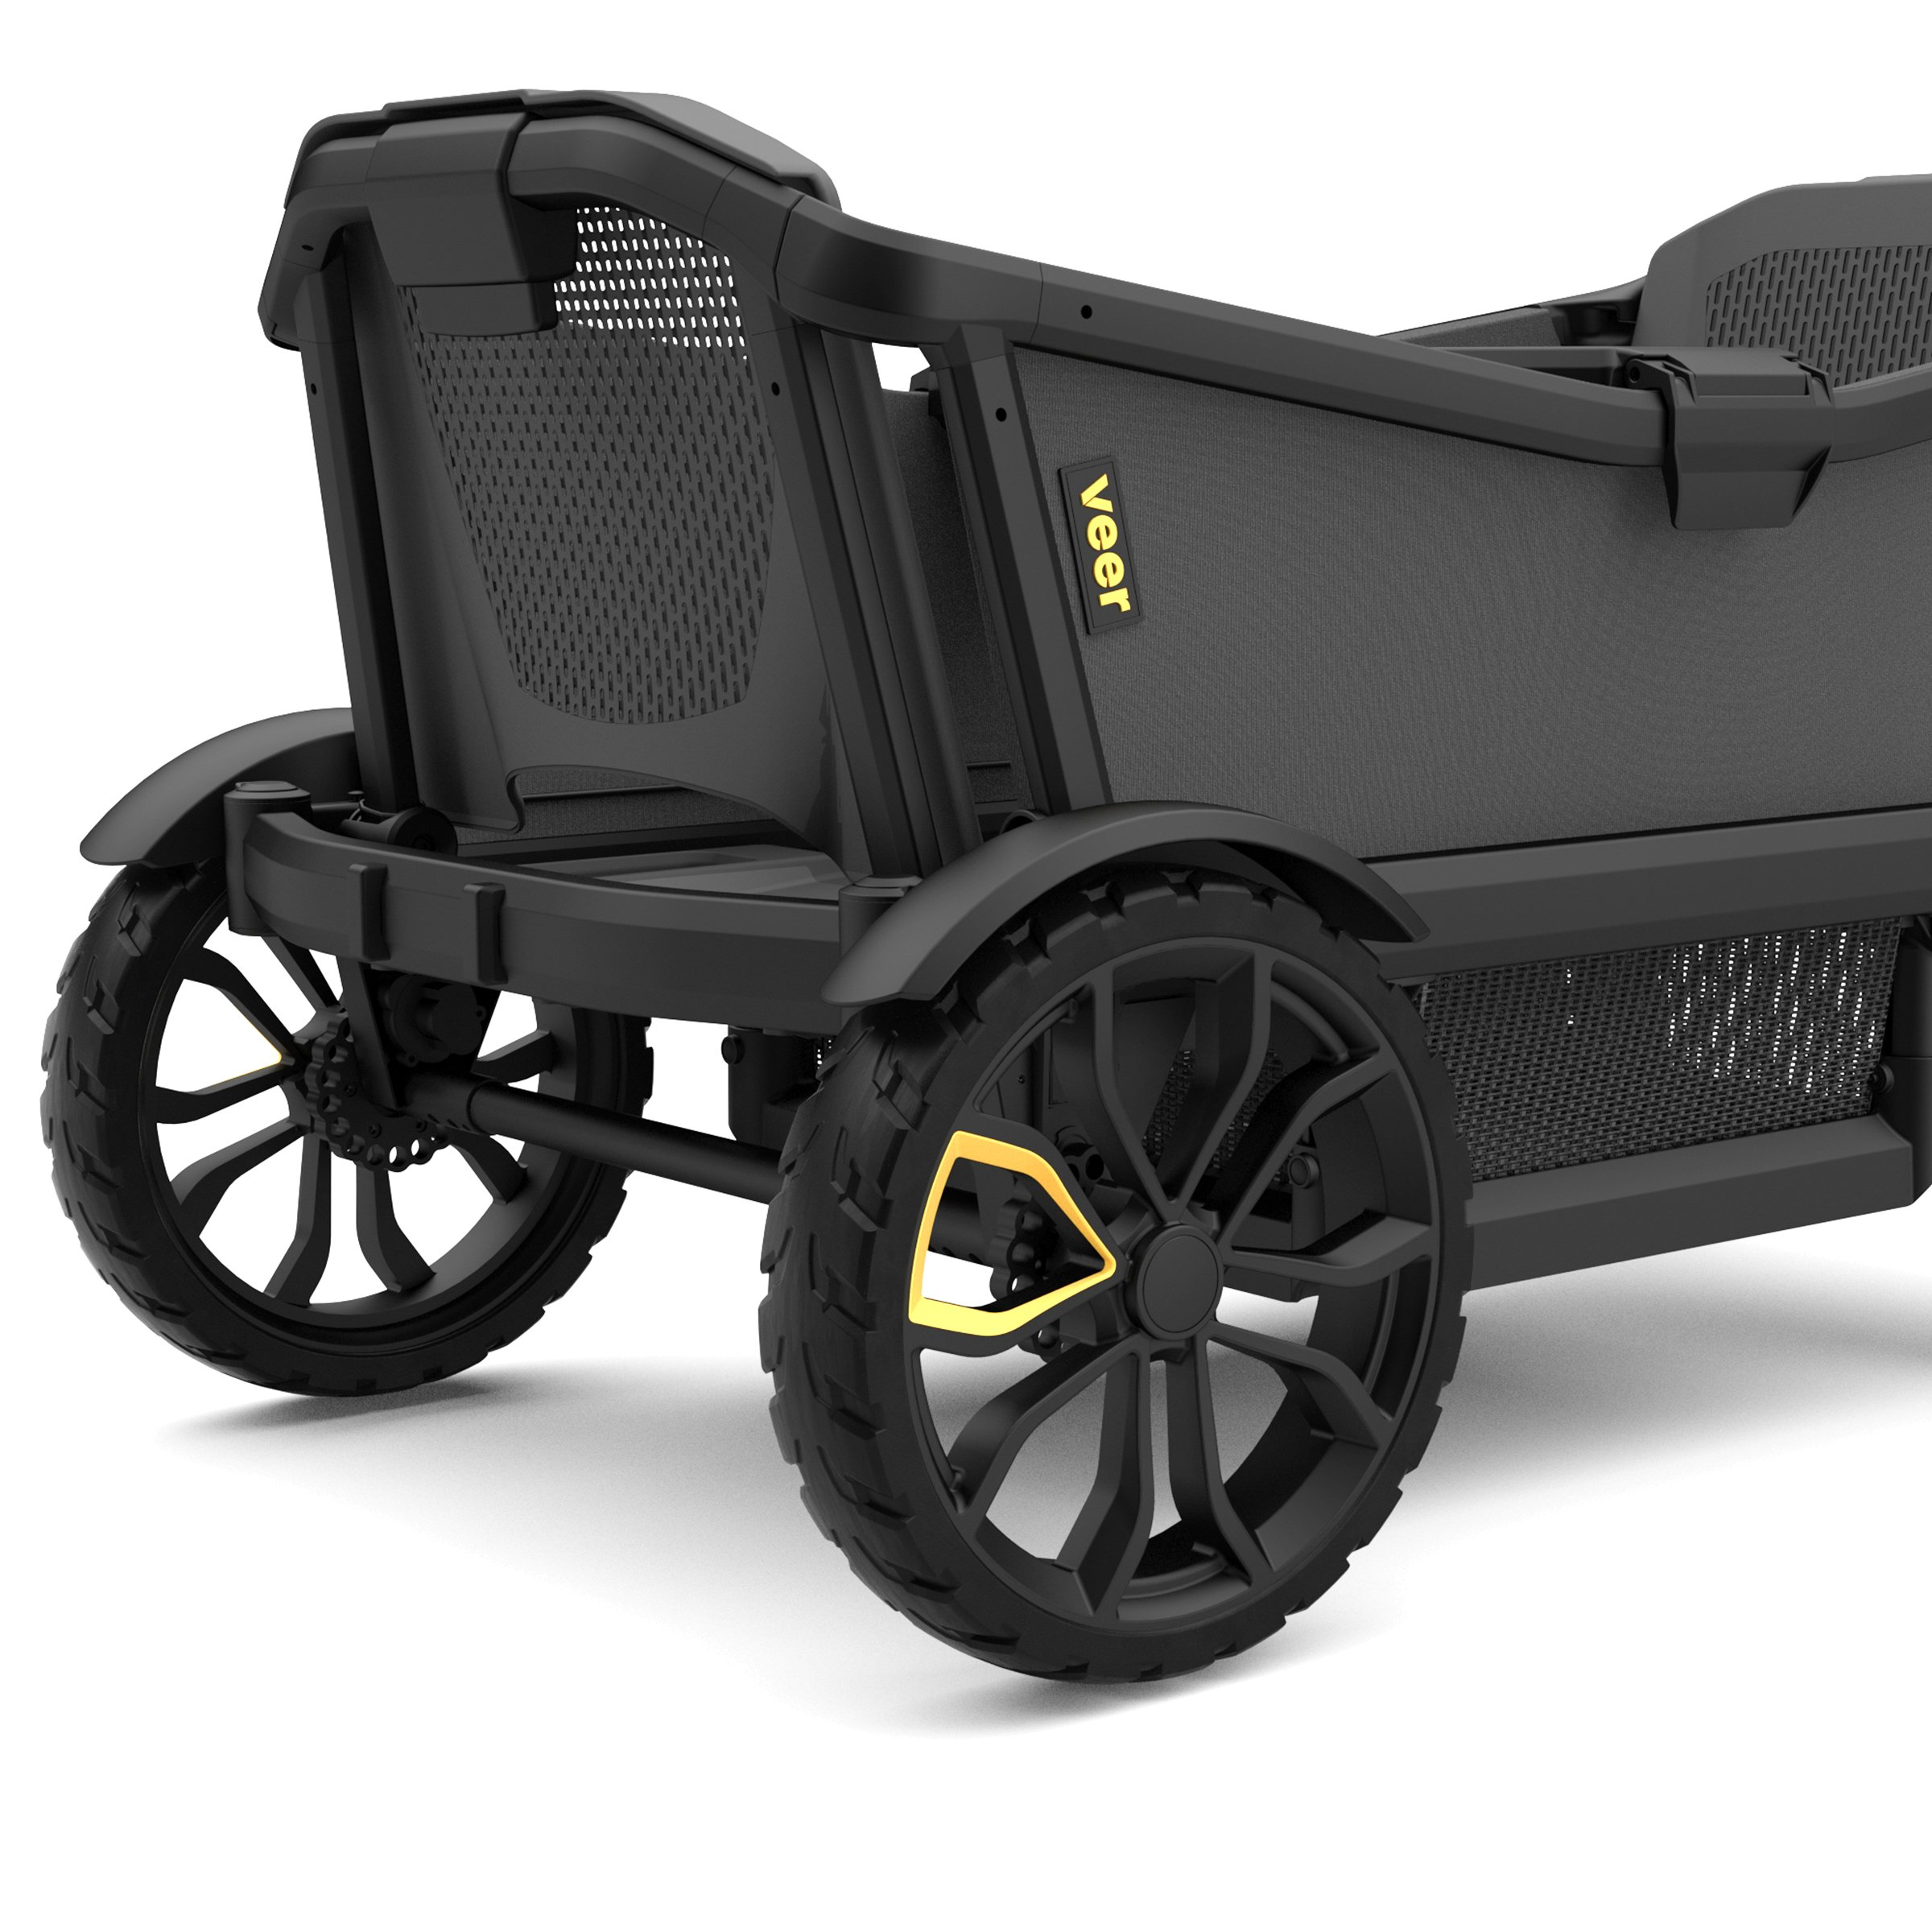 Veer Cruiser with Retractable Canopy | Next Generation Premium Stroller Wagon Hybrid by Veer (Image #3)